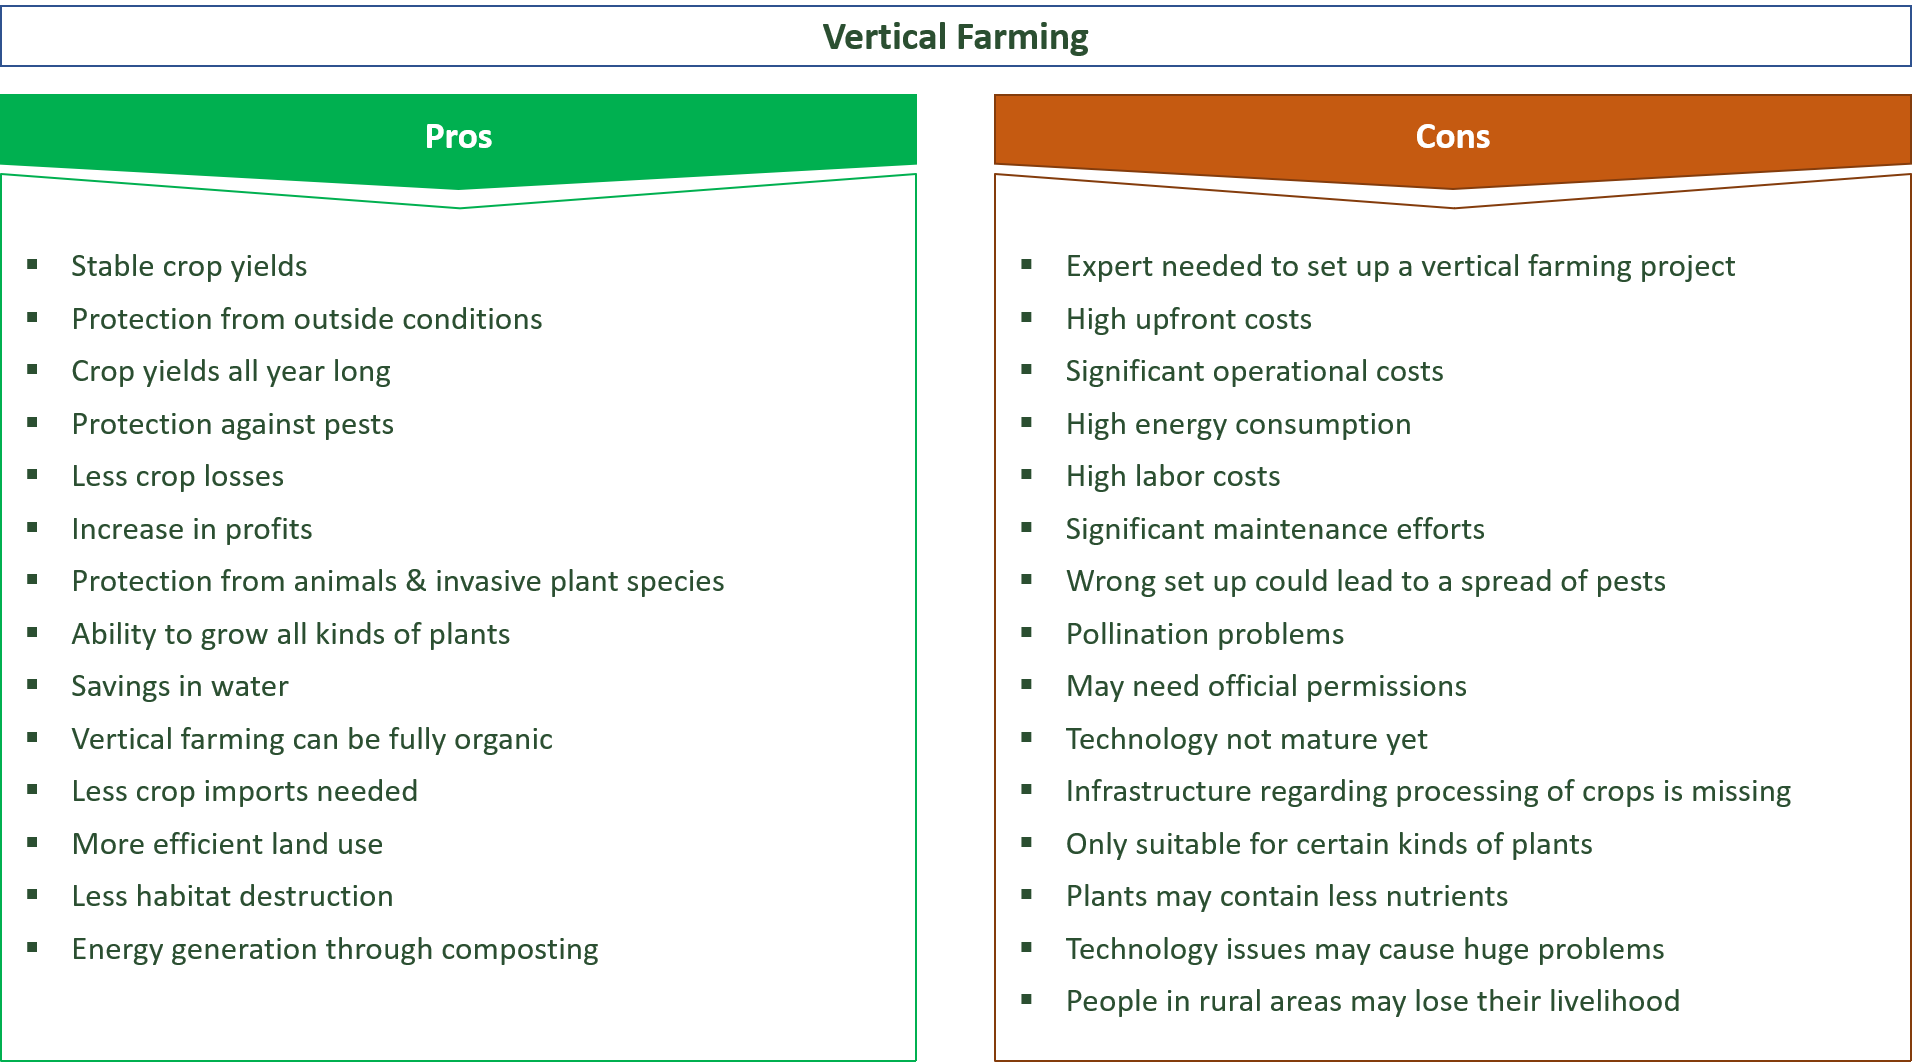 29 Major Pros & Cons Of Vertical Farming - E&C